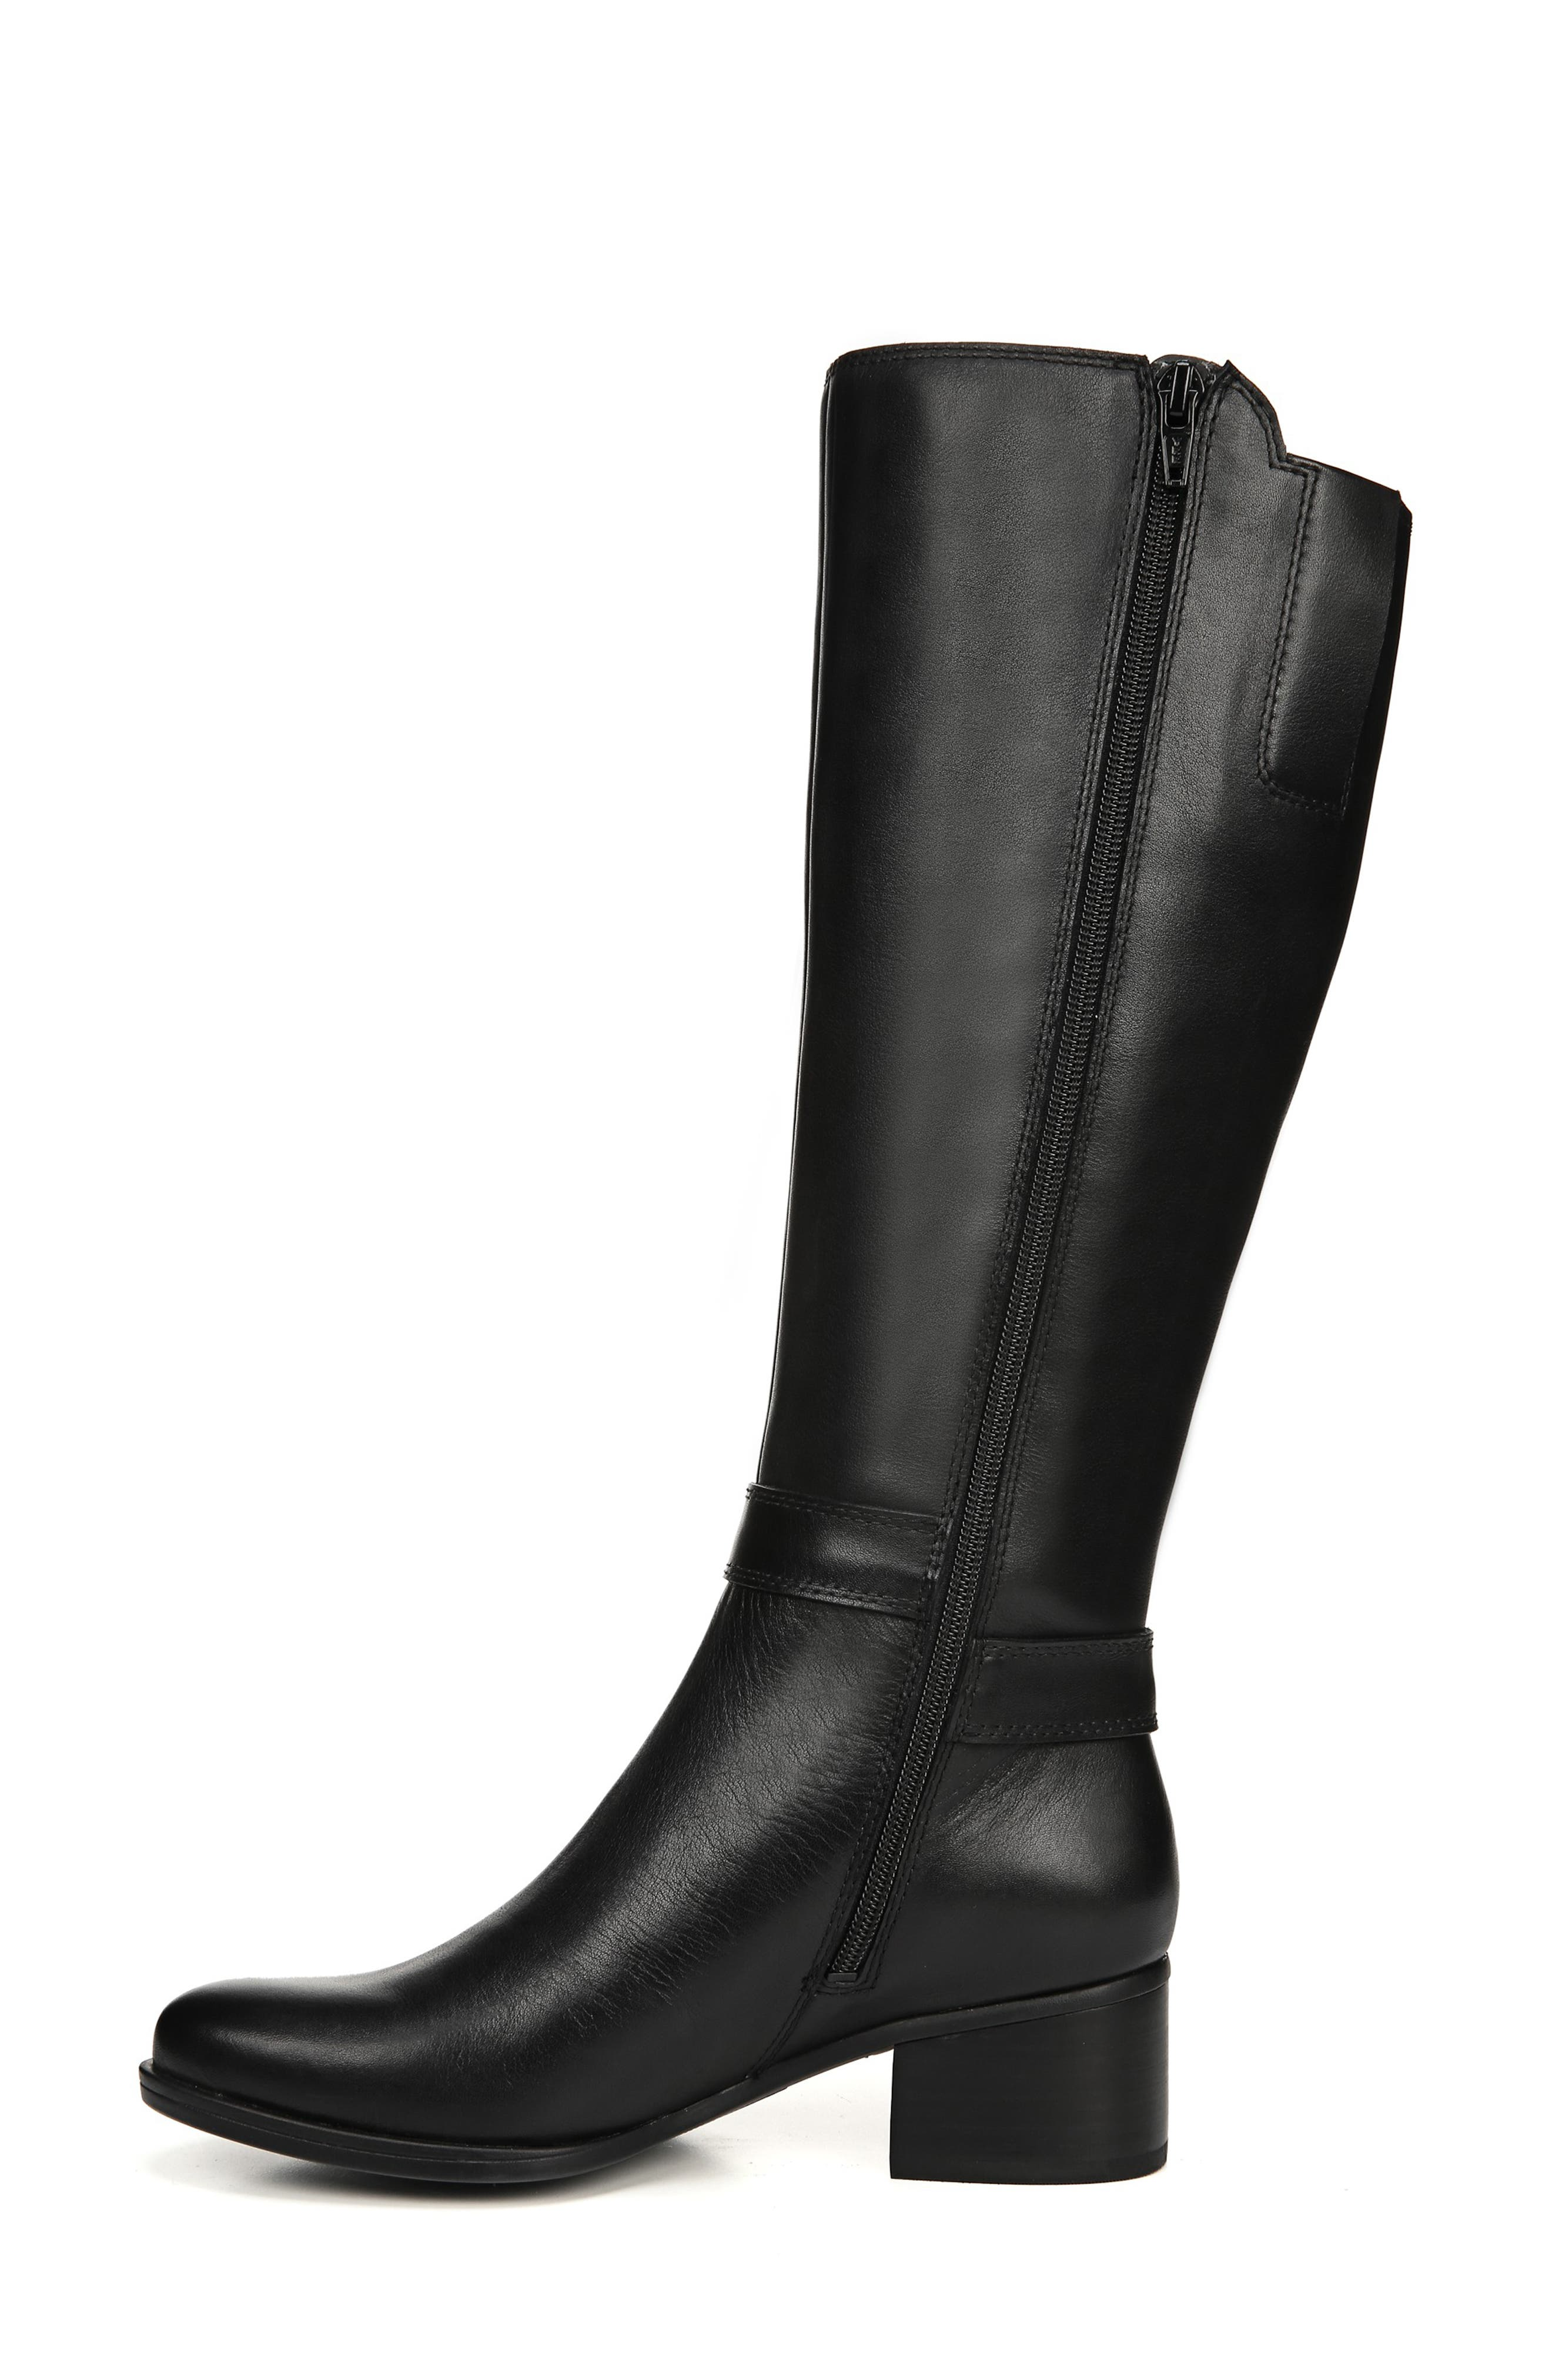 NATURALIZER, Dane Knee High Riding Boot, Alternate thumbnail 9, color, BLACK LEATHER